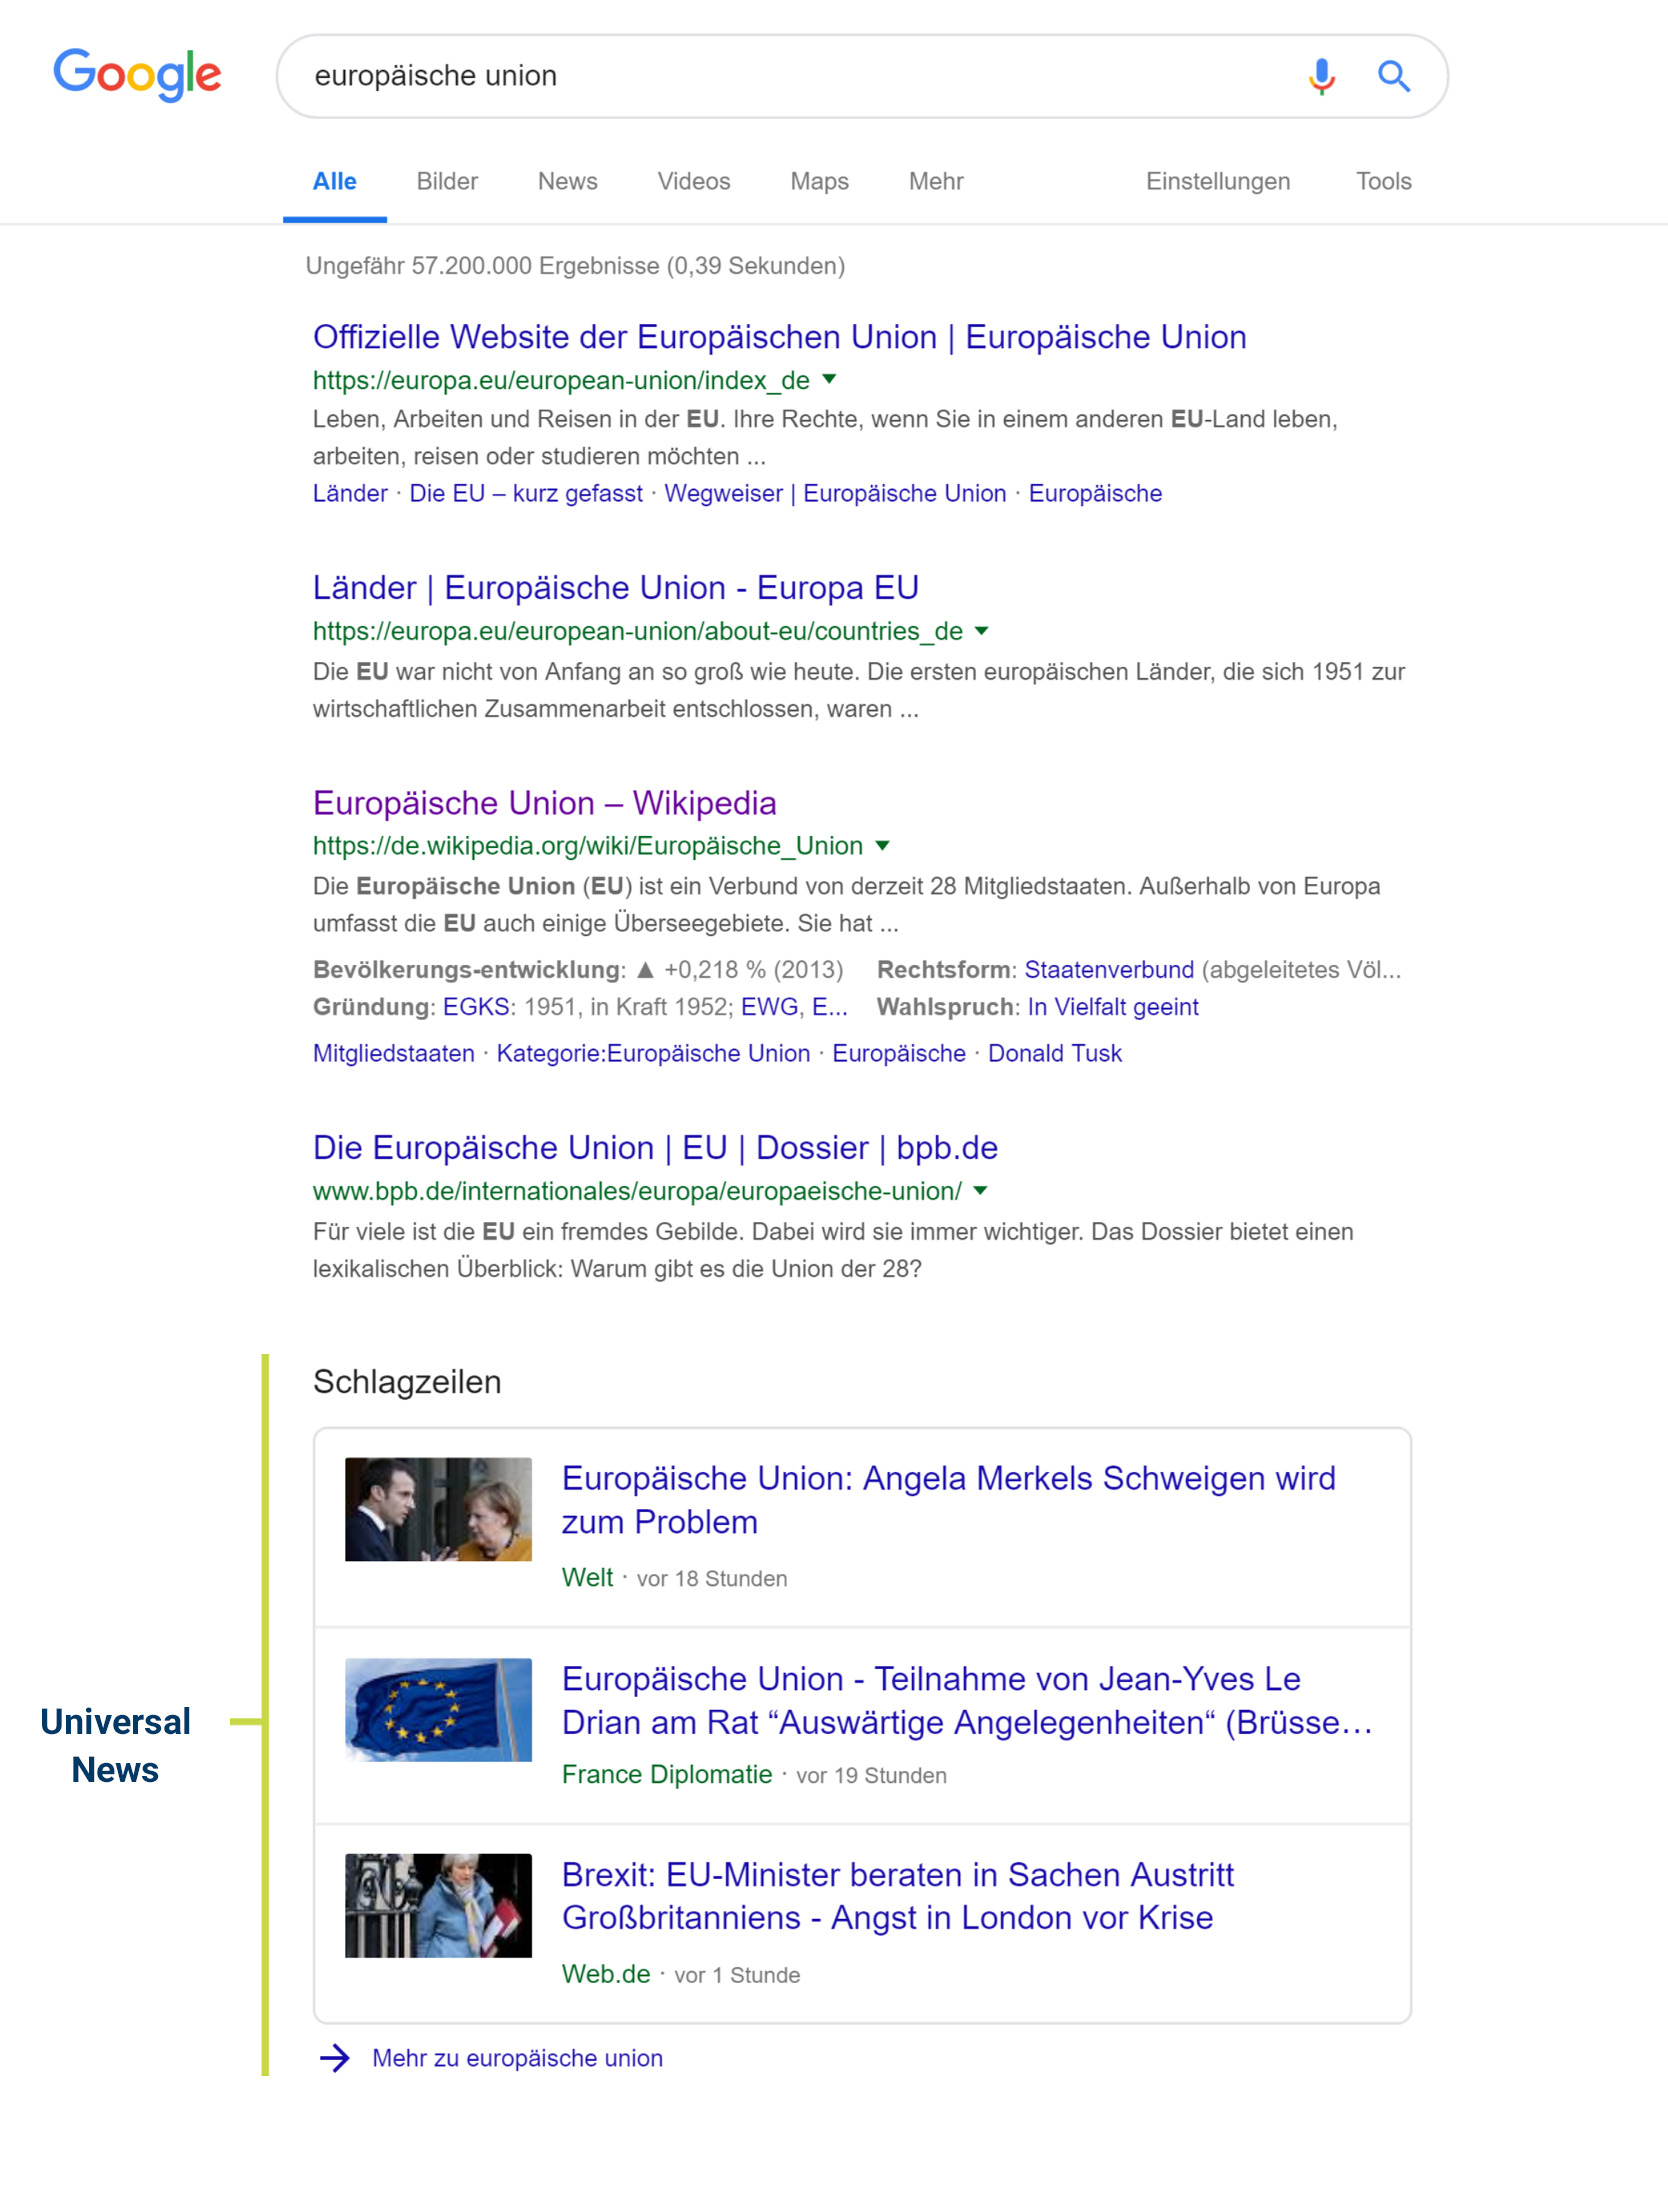 News Integration als Google SERPs